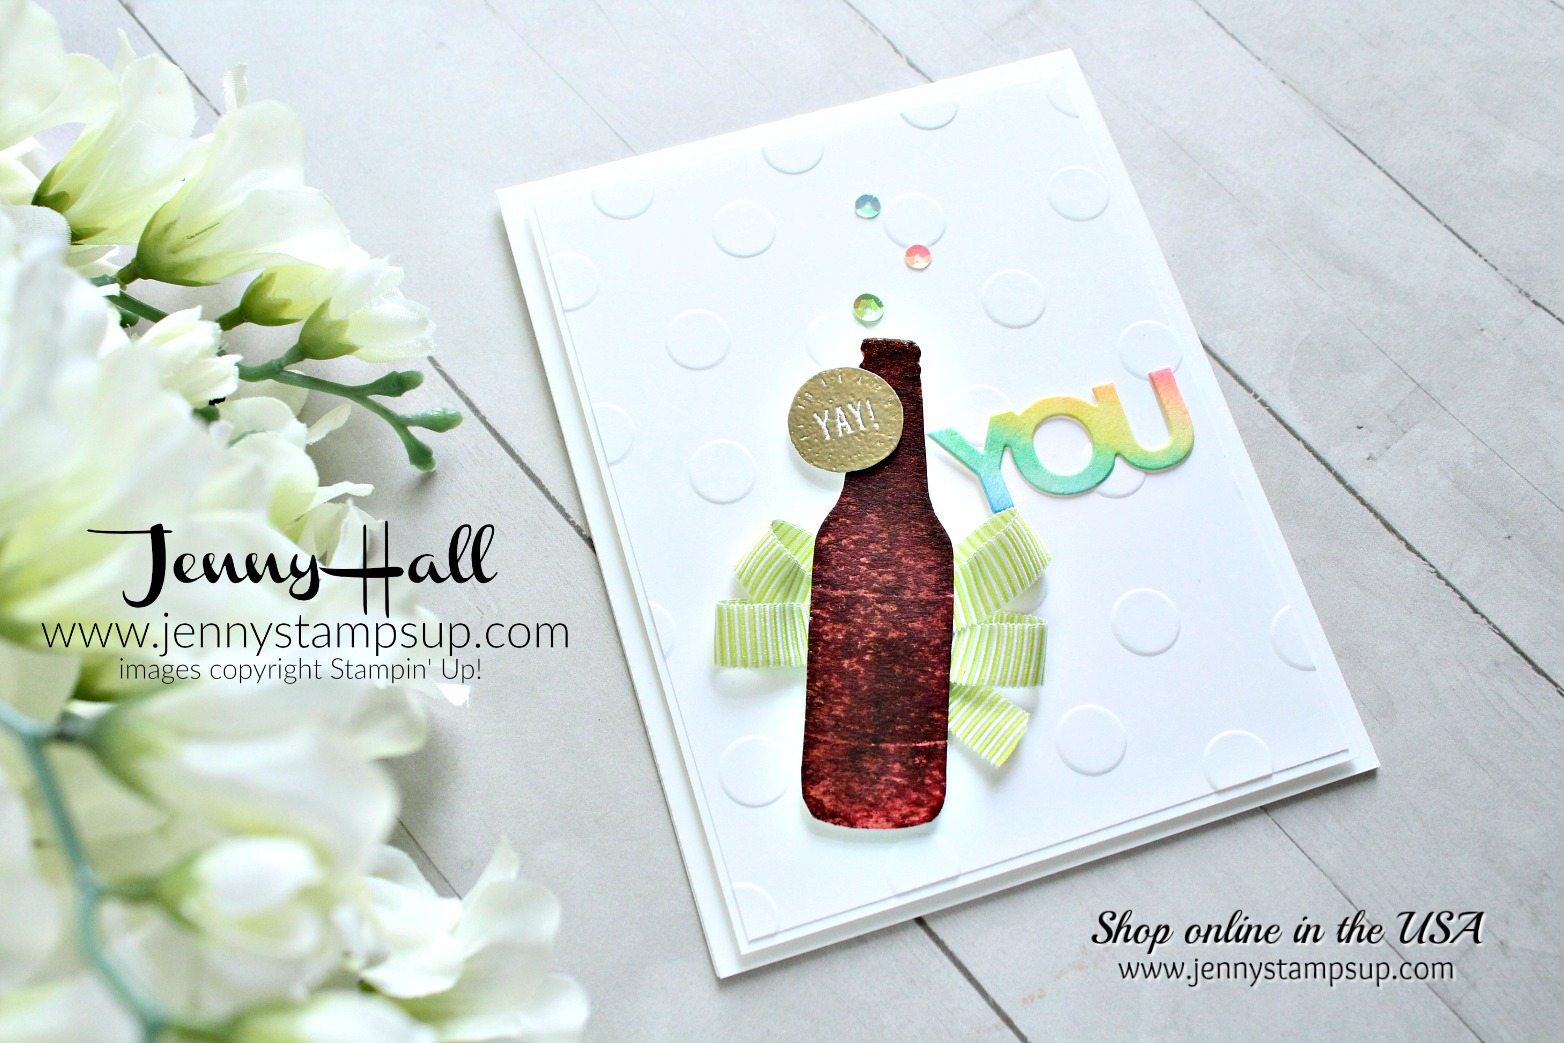 Bubble Over soda pop card created by Jenny Hall at www.jennyhalldesign.com for #cardmaking #cascards #bubbleover #watercolor #rainbow #stamping #stampinup #jennyhall #jennyhalldesign #jennyhallstampinup #jennystampsup #crafts #craftsforkids